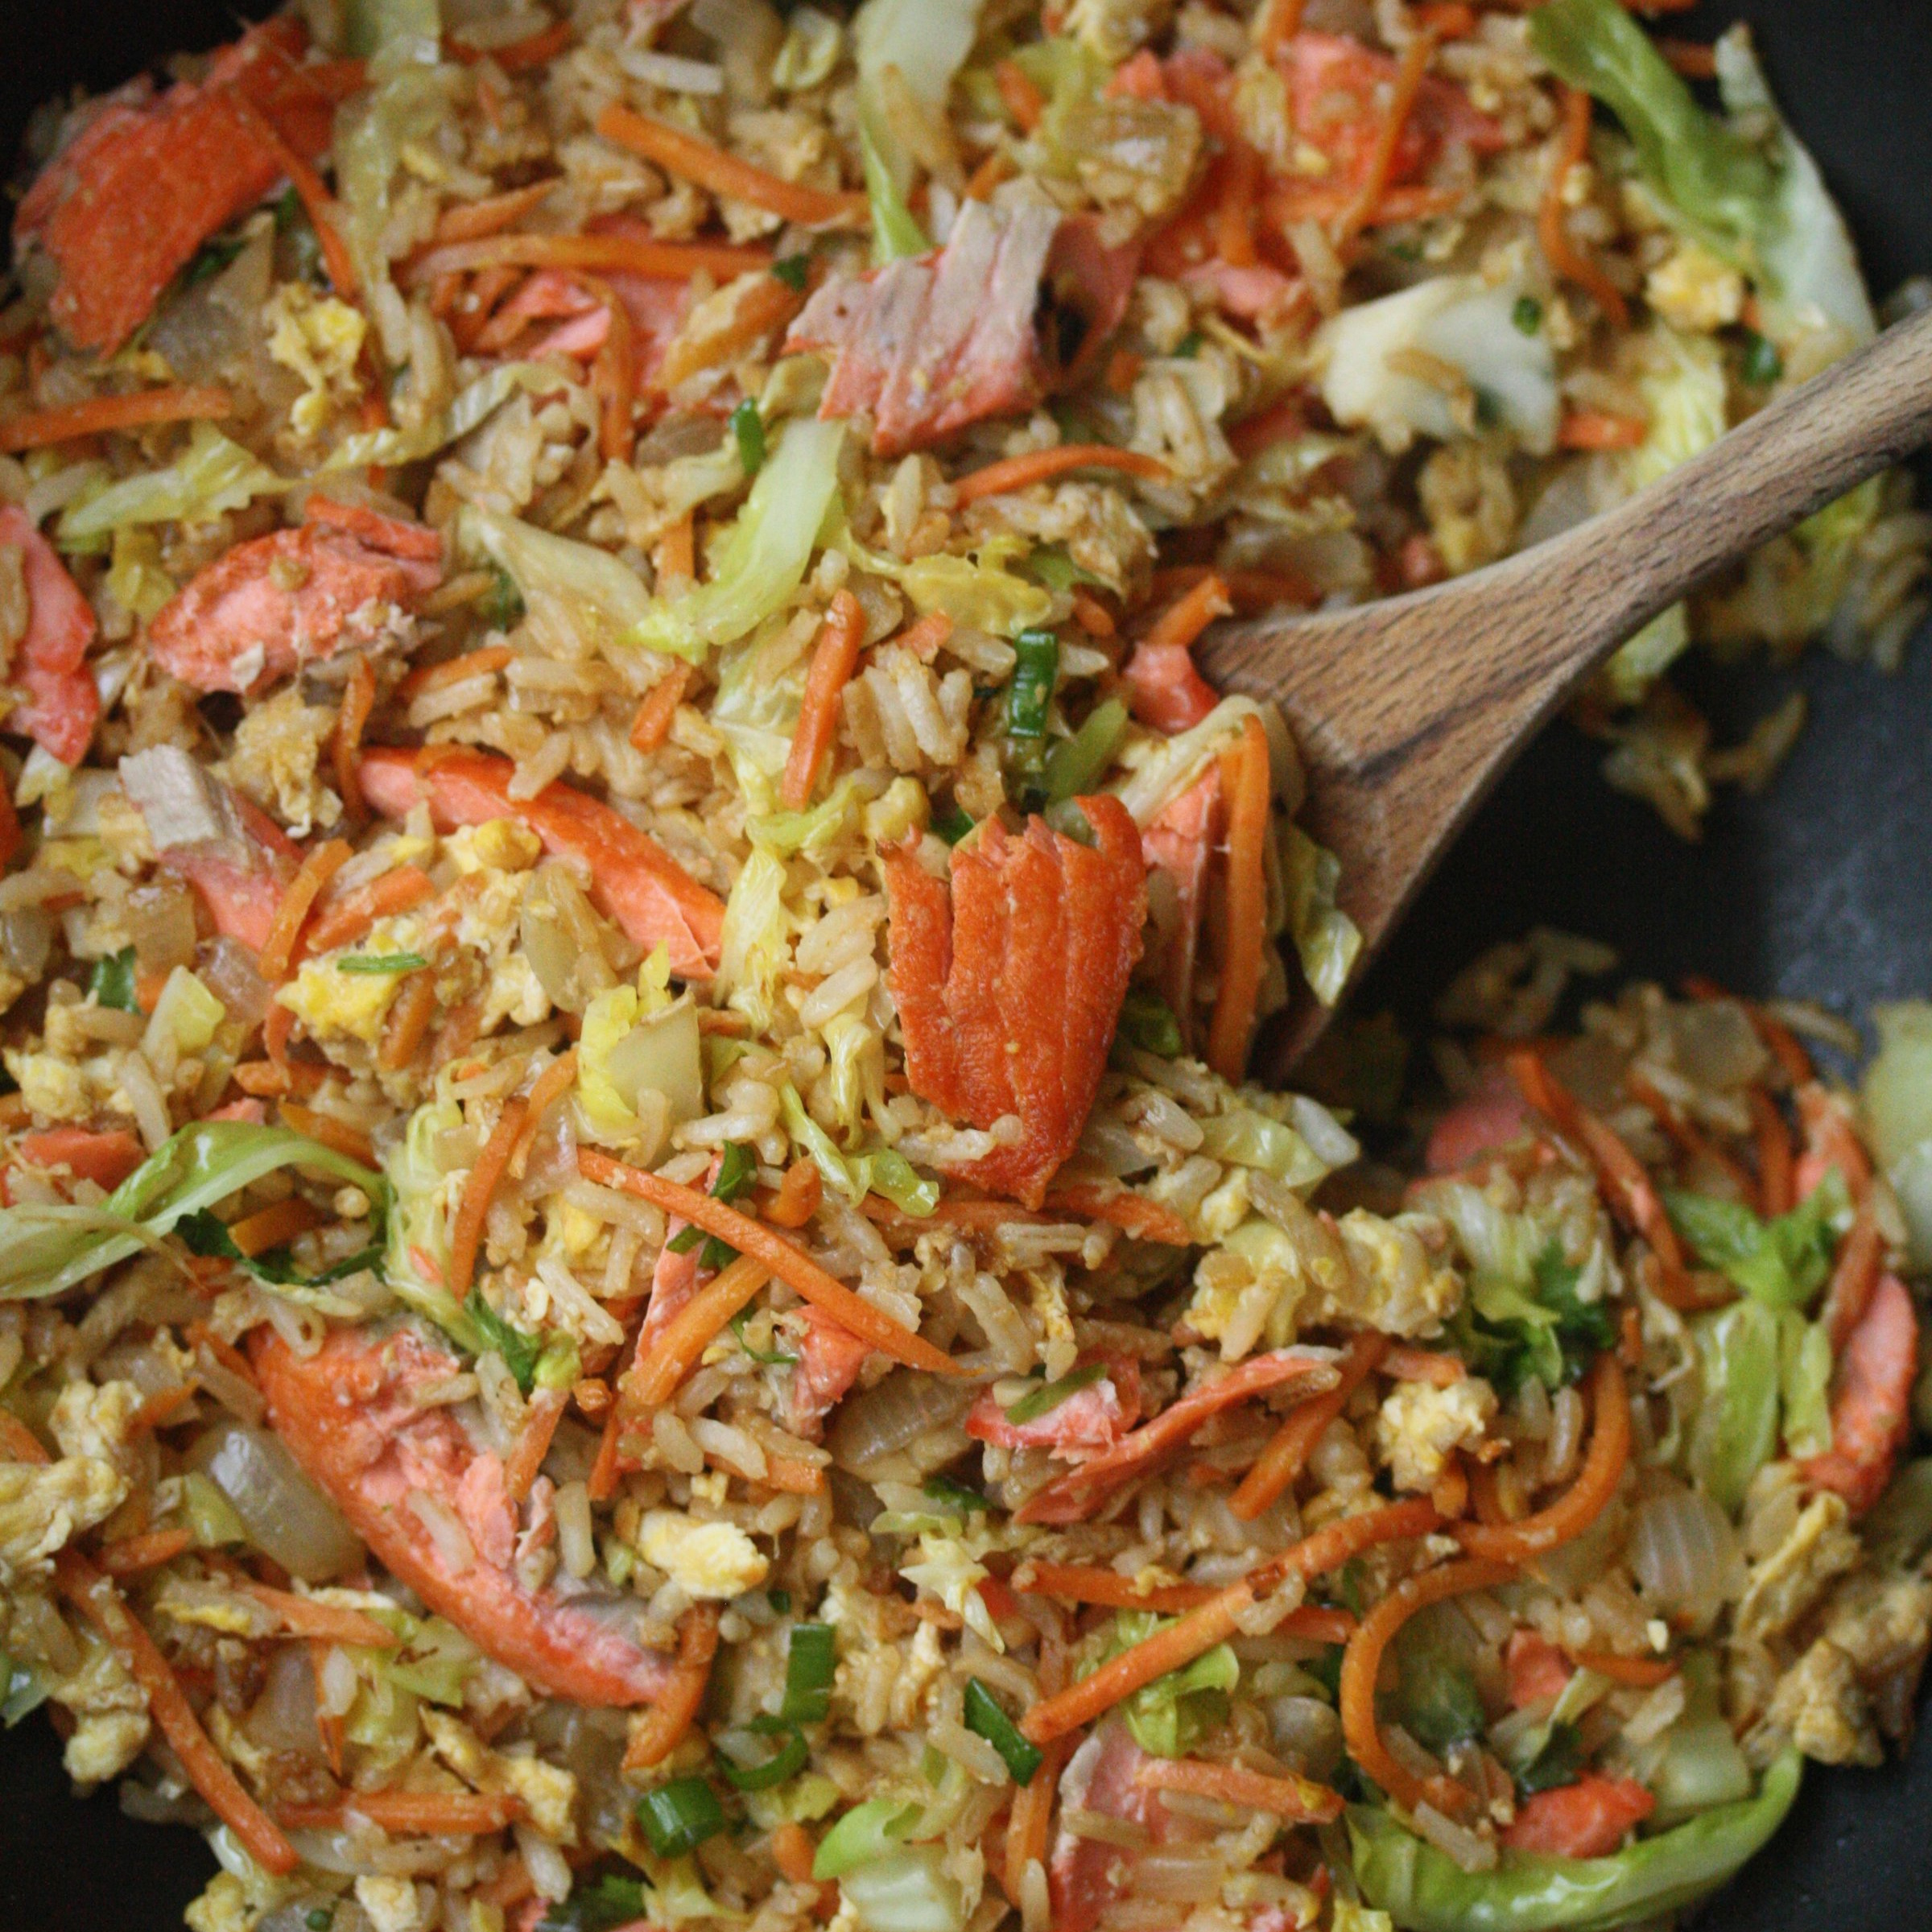 Salmon Fried Rice With Carrots And Cabbage Recipe  Phoebe Lapine  Food &  Wine